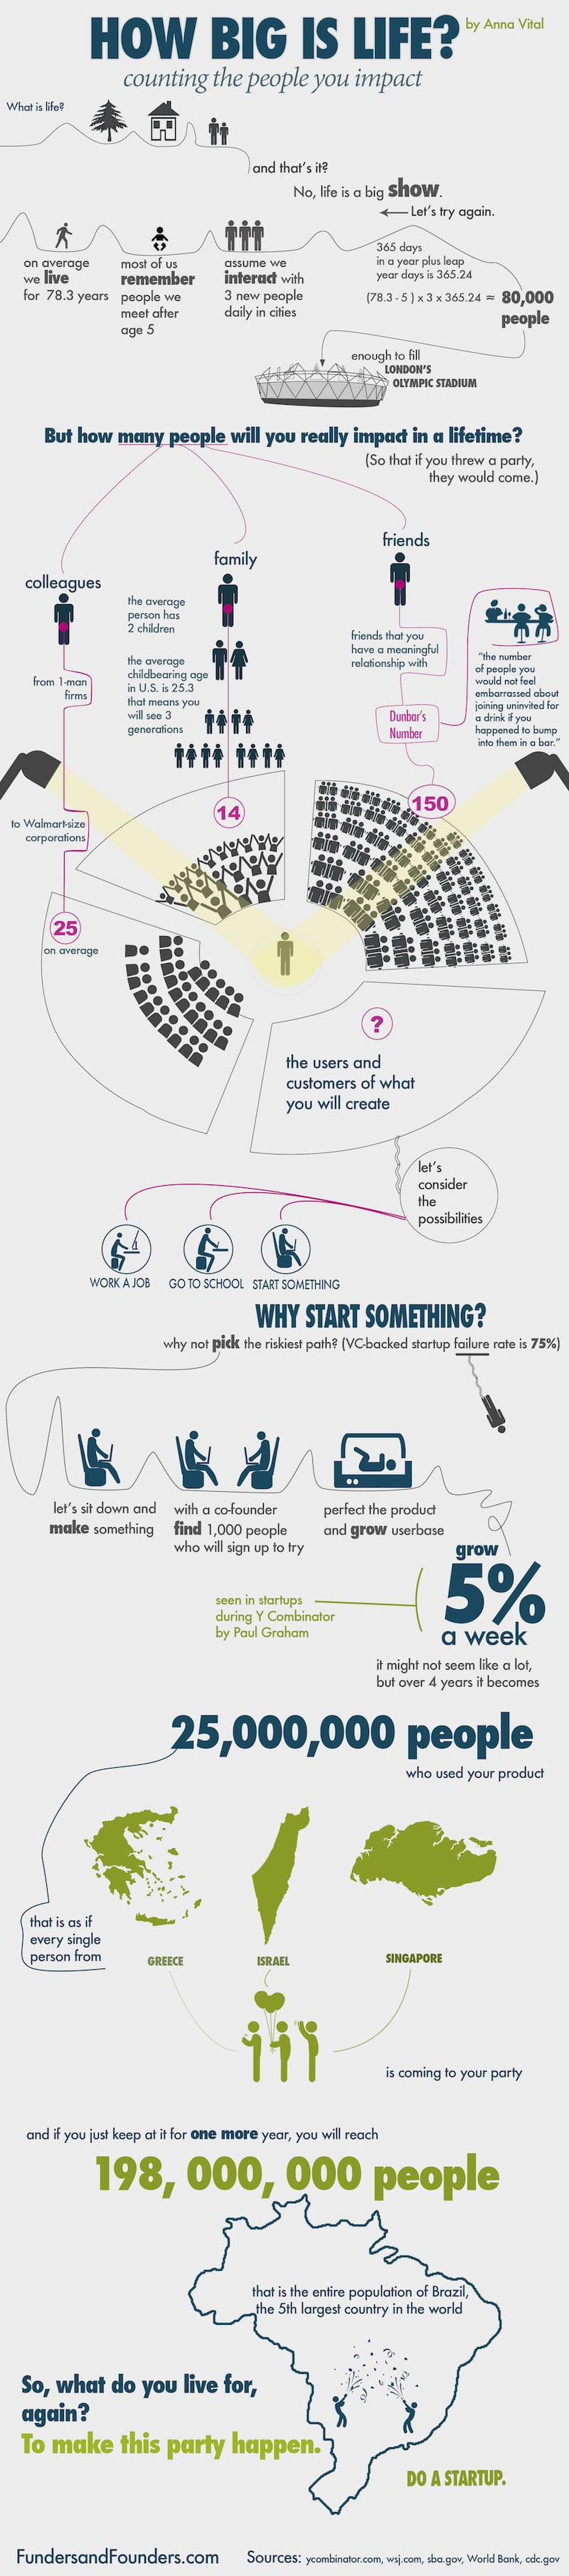 How Many People You Can Impact With Your Business Idea? [Infographic]